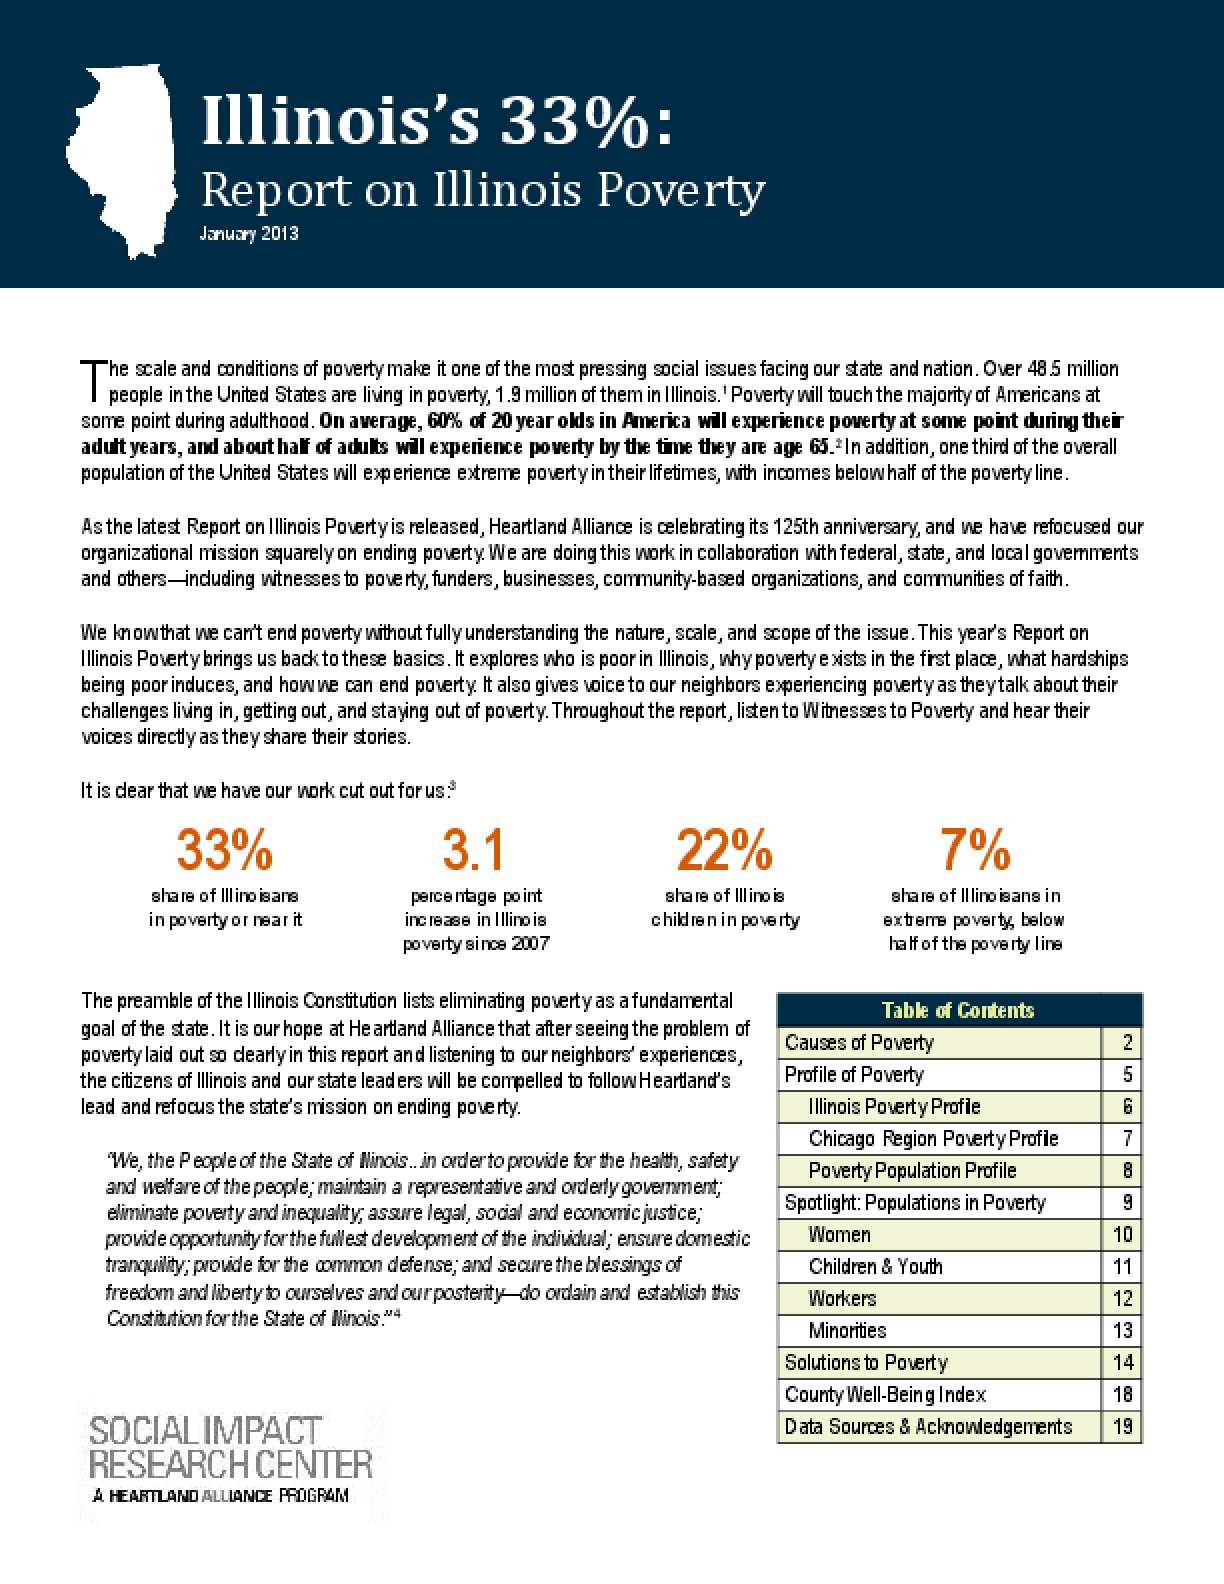 Illinois's 33%: Report on Illinois Poverty